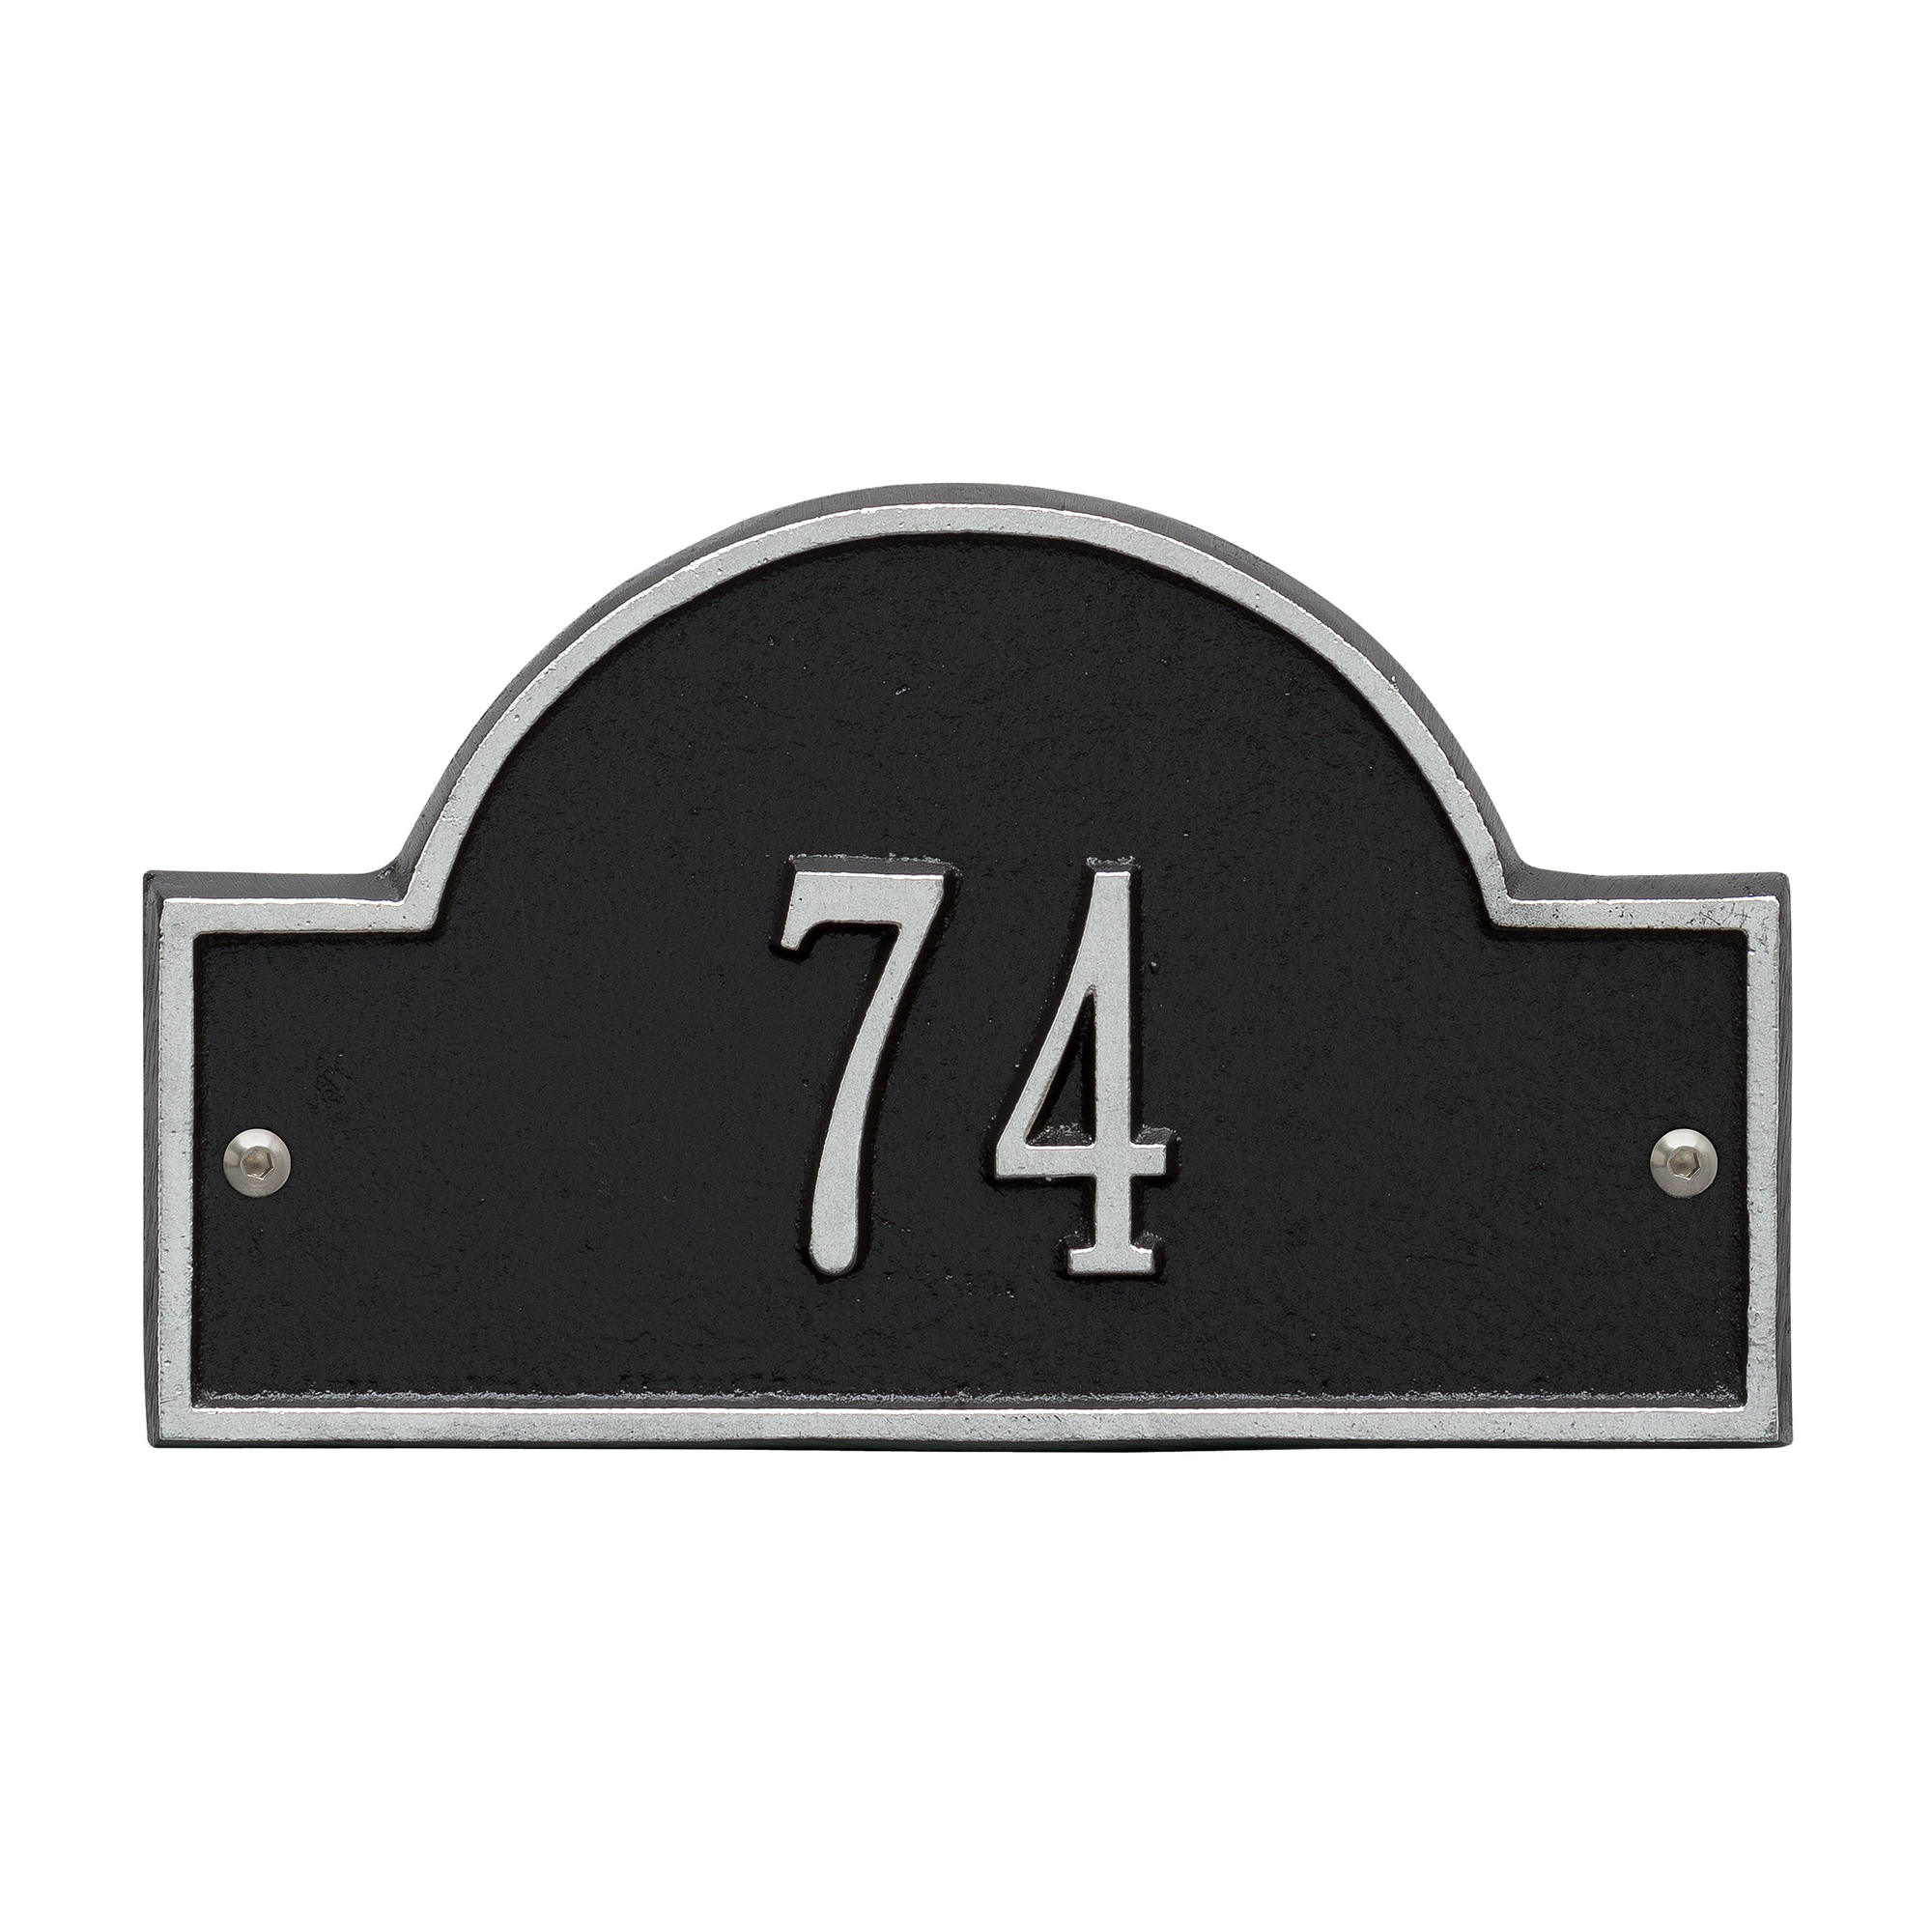 Personalized Whitehall Products Petite One-Line Arch Marker Address Plaque in Black Silver by Whitehall